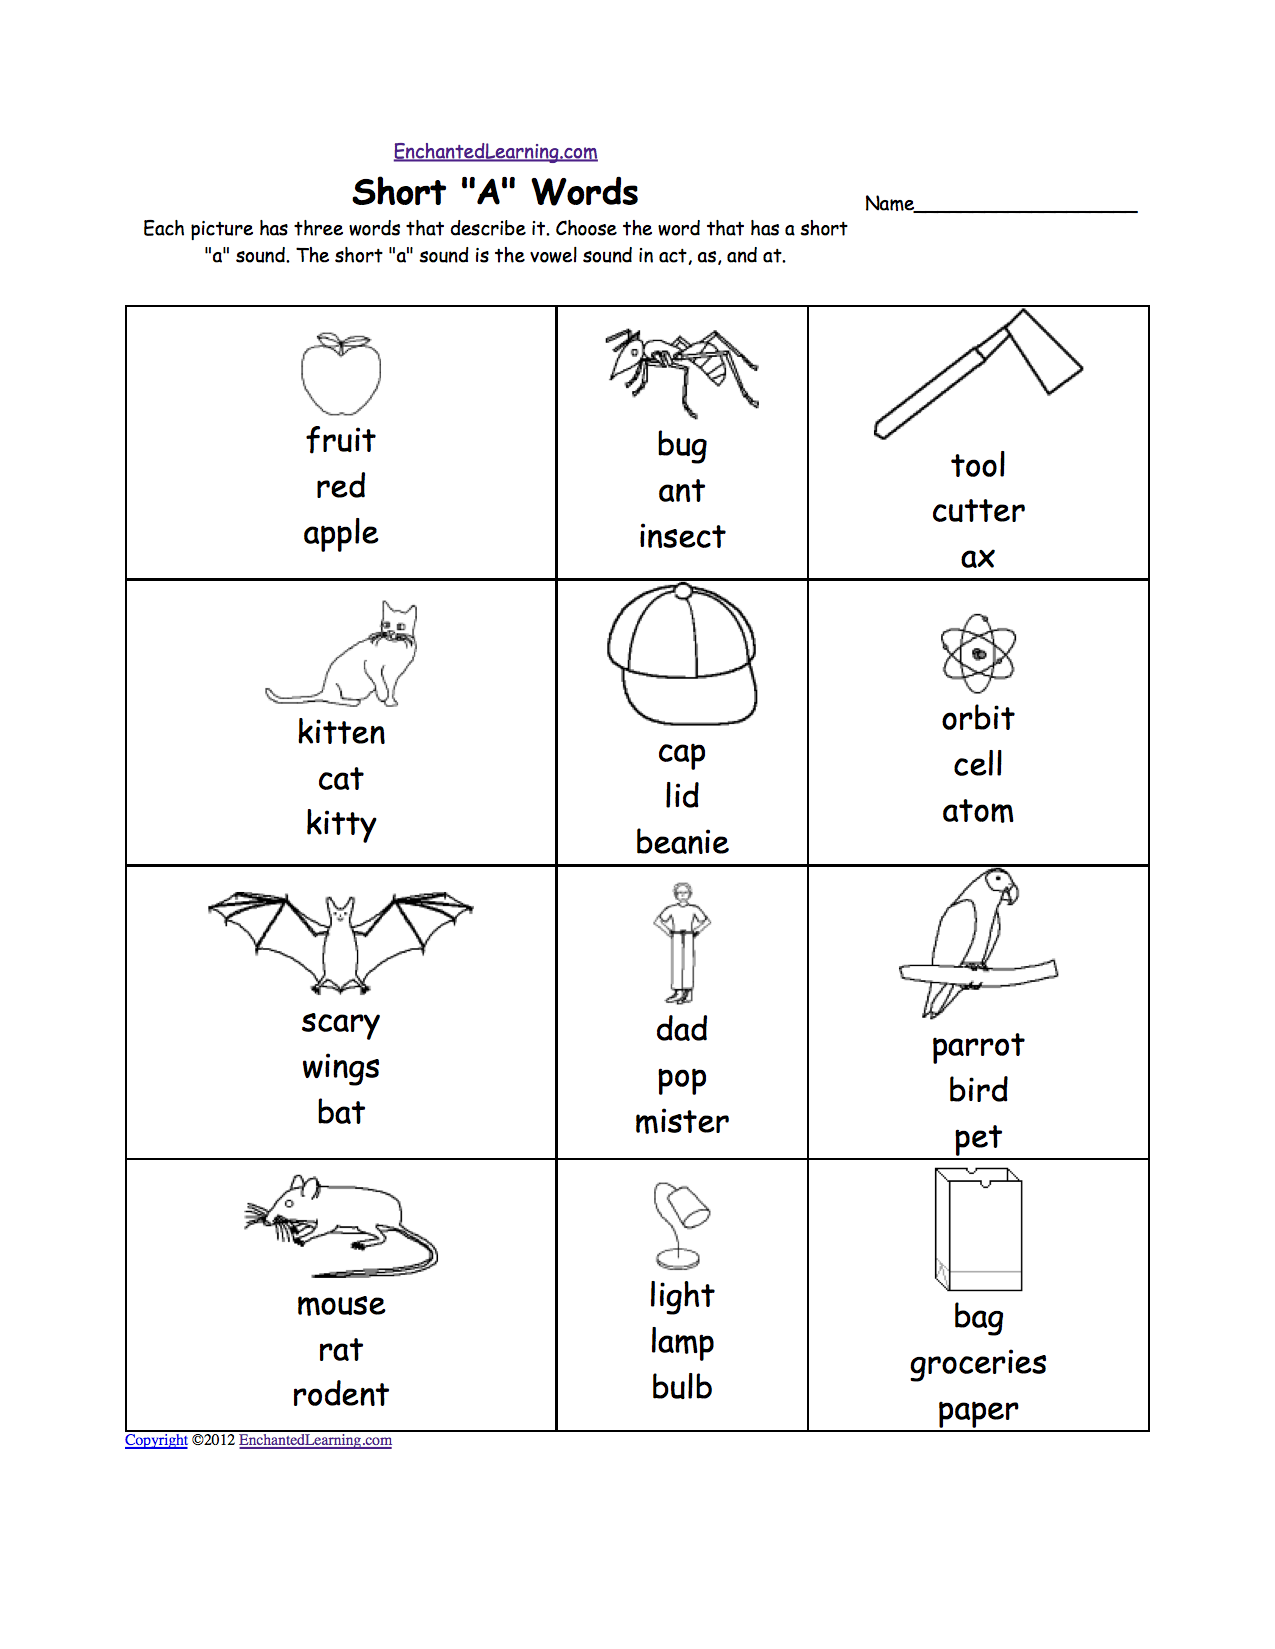 Worksheet Th Phonics ng sound homework phonics worksheets multiple choice to print enchantedlearning com enchanted learning